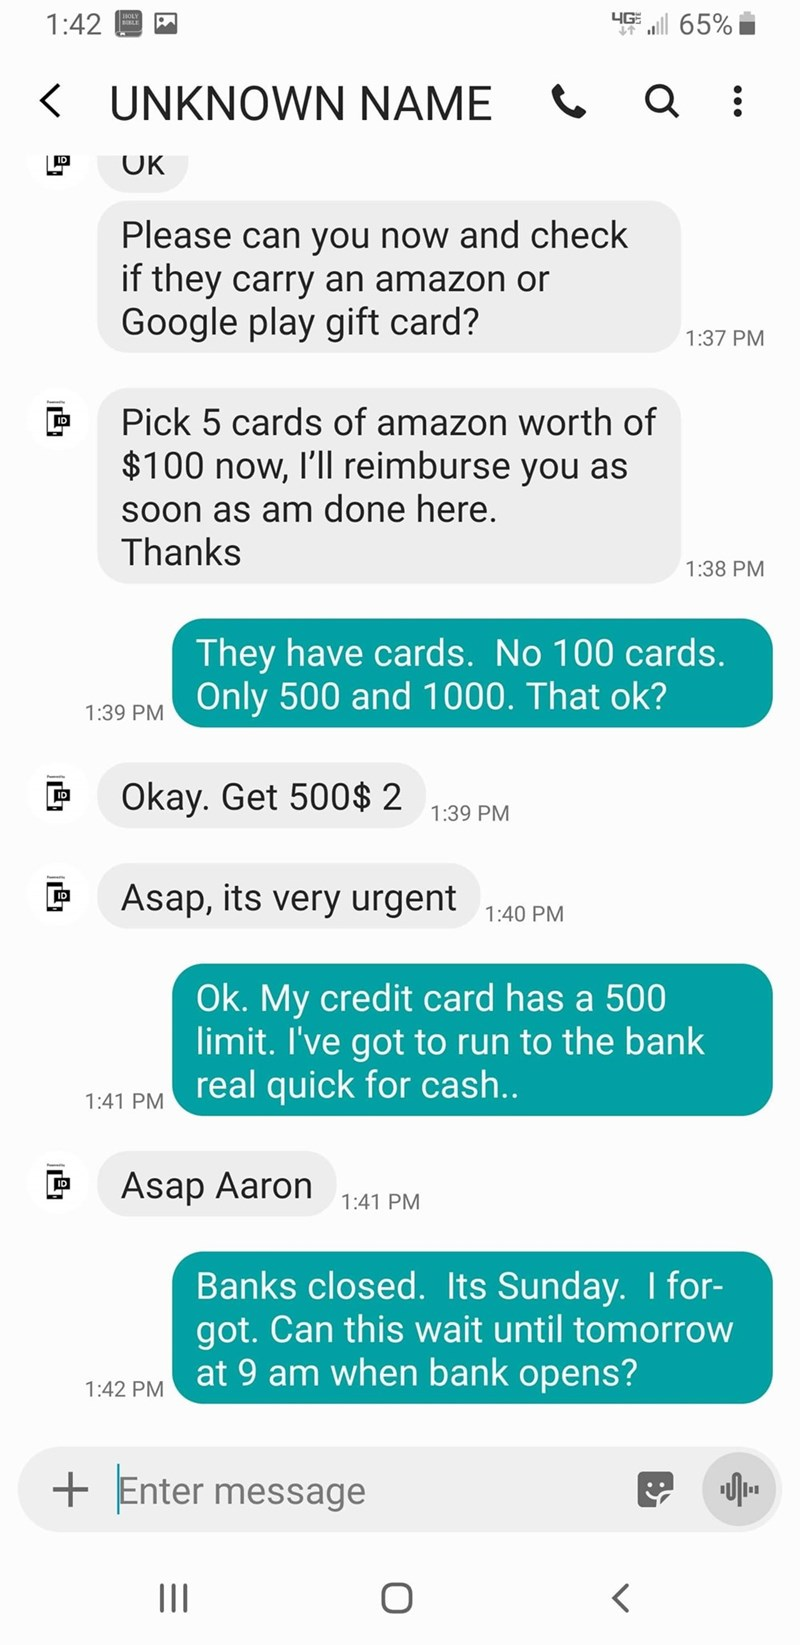 Text - 4G l 65% 1:42 KUNKNOWN NAME IP OK Please can you now and check if they carry an amazon or Google play gift card? 1:37 PM Pick 5 cards of amazon worth of $100 now, I'll reimburse you as Soon as am done here. Thanks 1:38 PM They have cards. No 100 cards. Only 500 and 1000. That ok? 1:39 PM Okay. Get 500$ 2 ID 1:39 PM Asap, its very urgent ID 1:40 PM Ok. My credit card has a 500 limit. I've got to run to the bank real quick for cash.. 1:41 PM Asap Aaron ID 1:41 PM Banks closed. Its Sunday. I